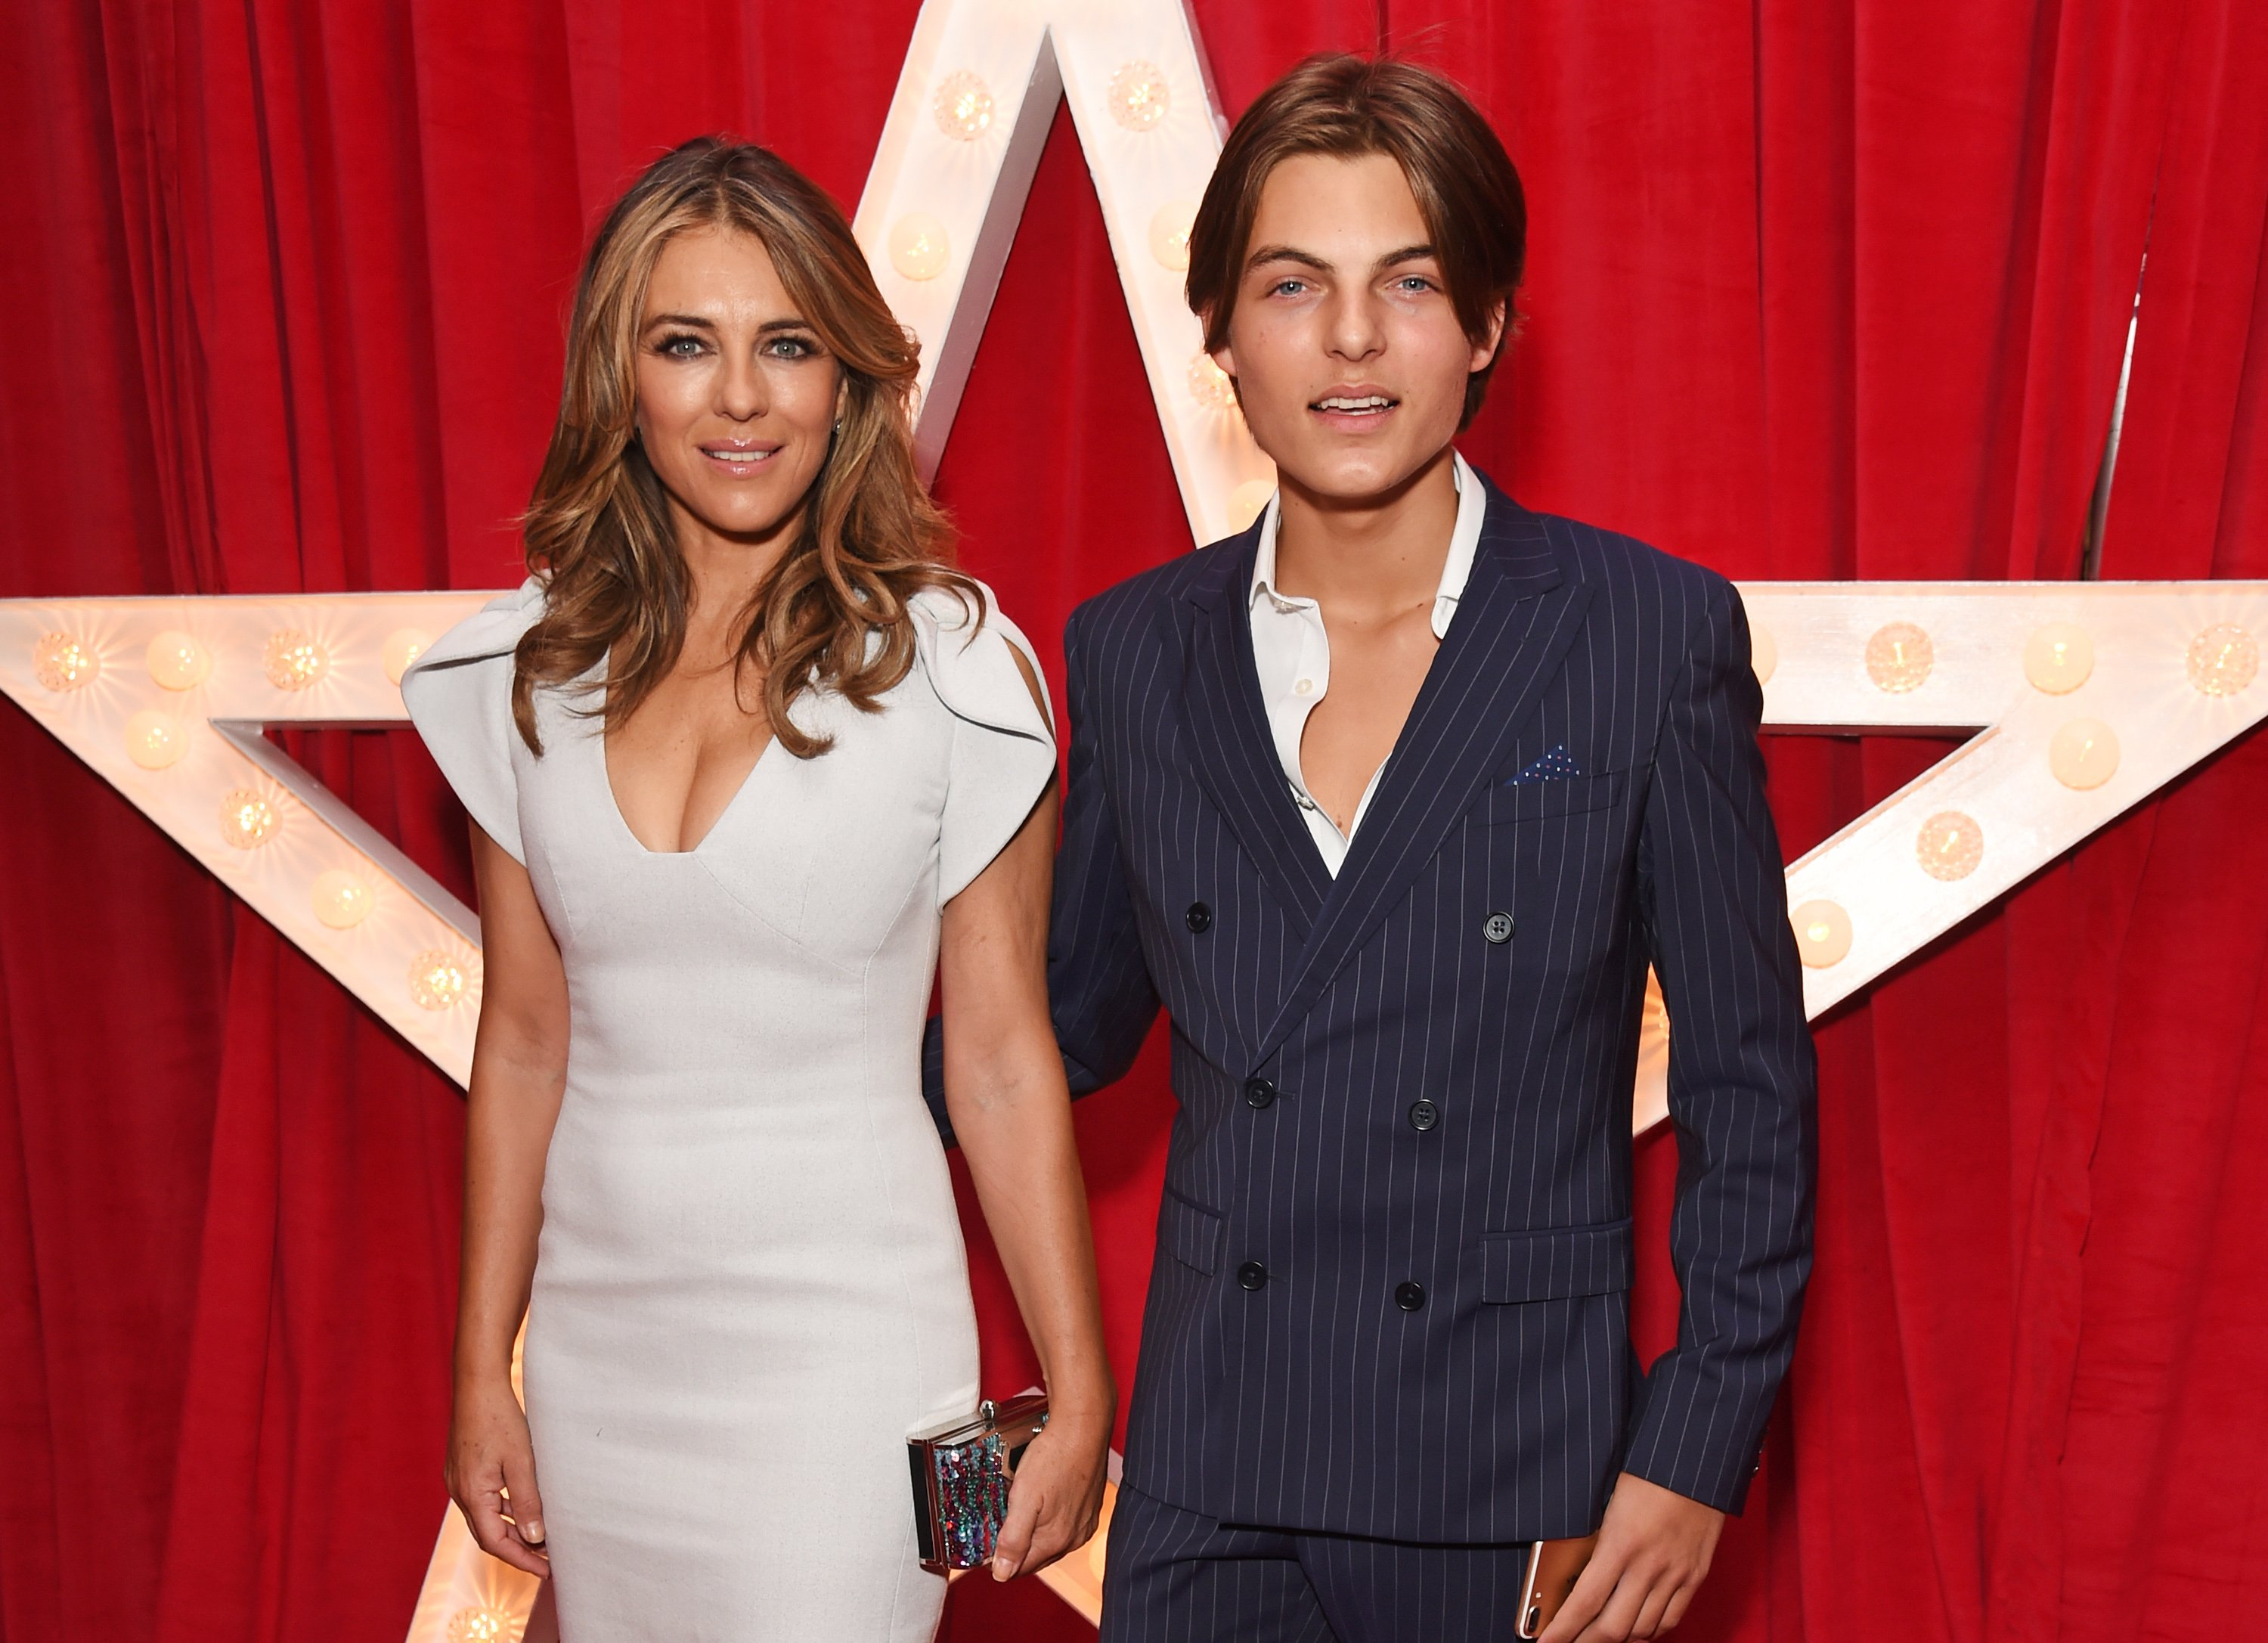 """Elizabeth Hurley and her son Damian Hurley at the """"Paddington 2"""" premiere in London, 5 November, 2017. 